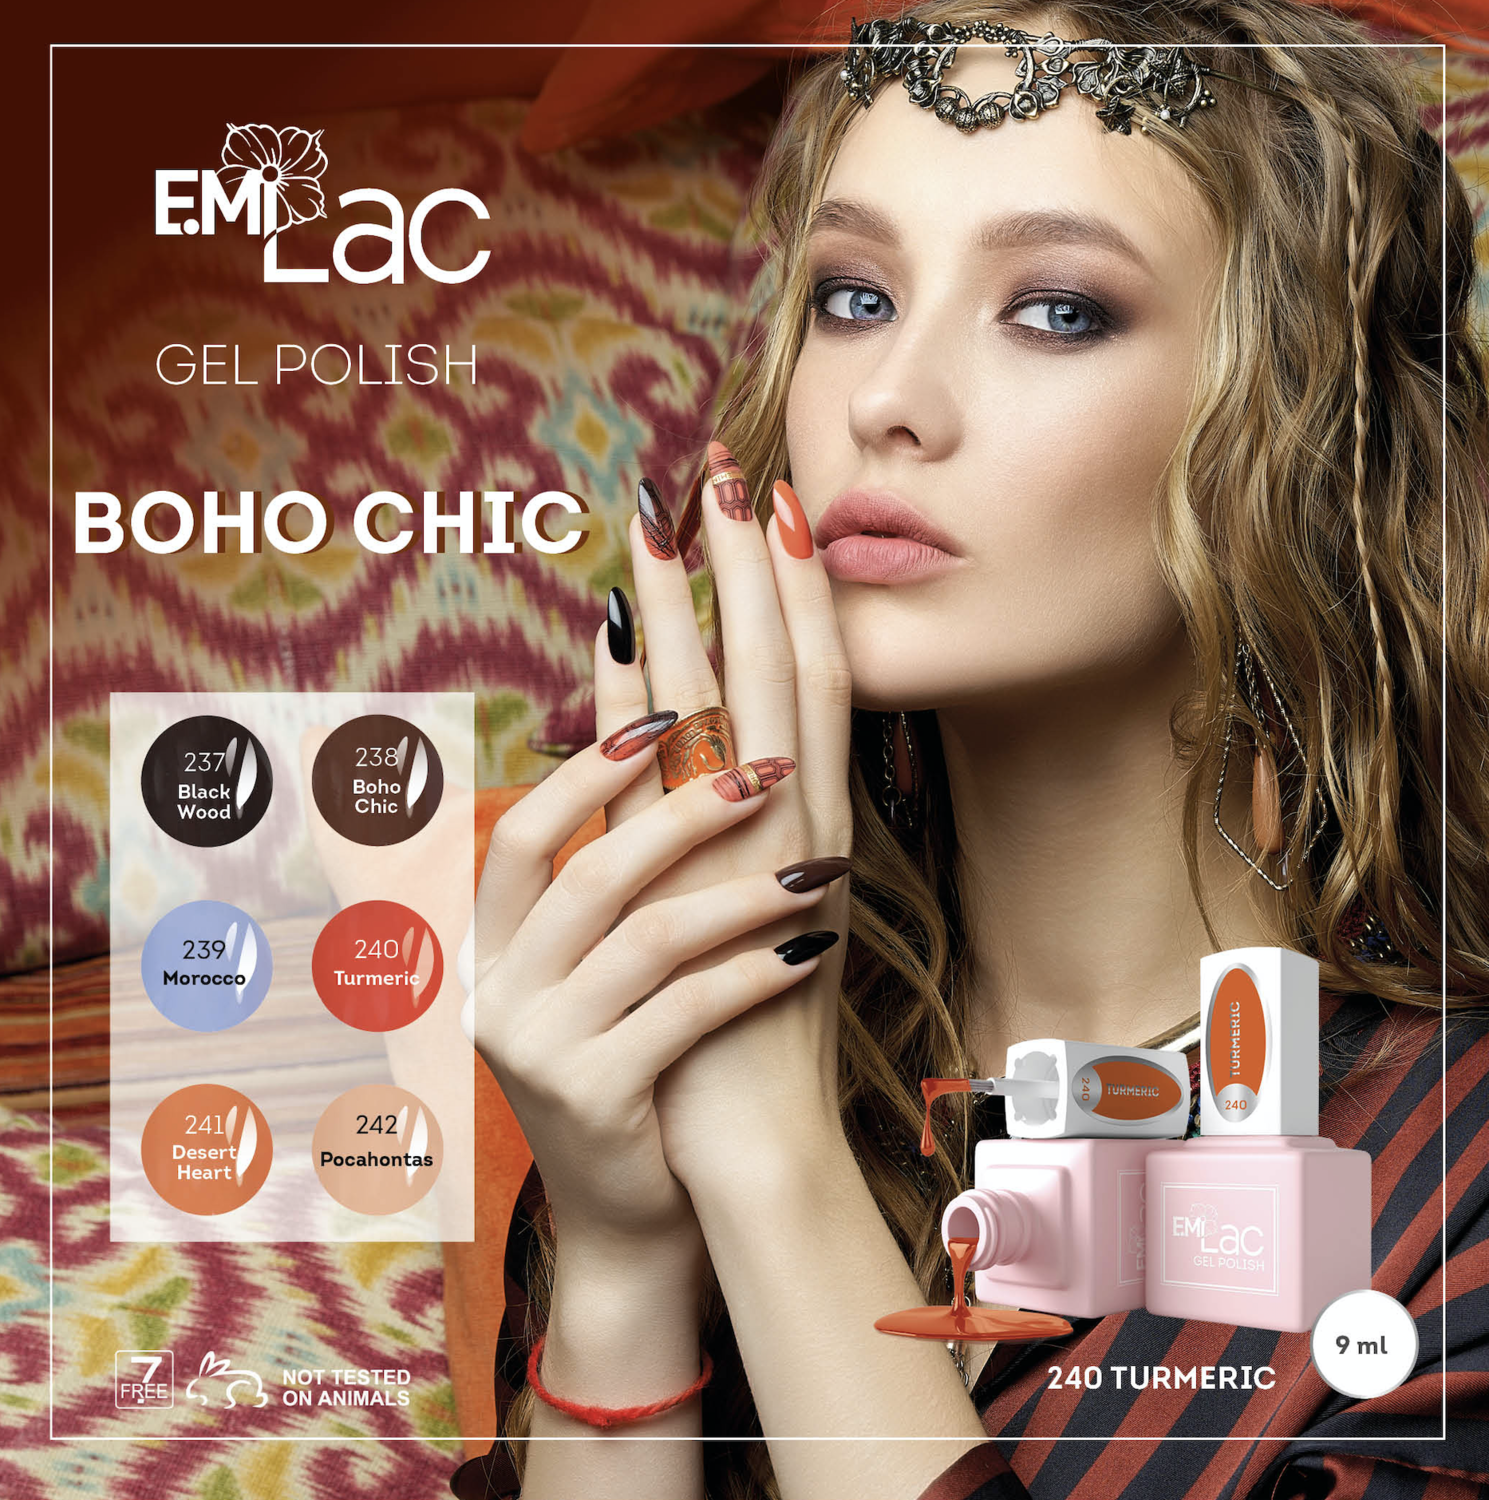 Set E.MiLac Boho Chic collection 9 ml.